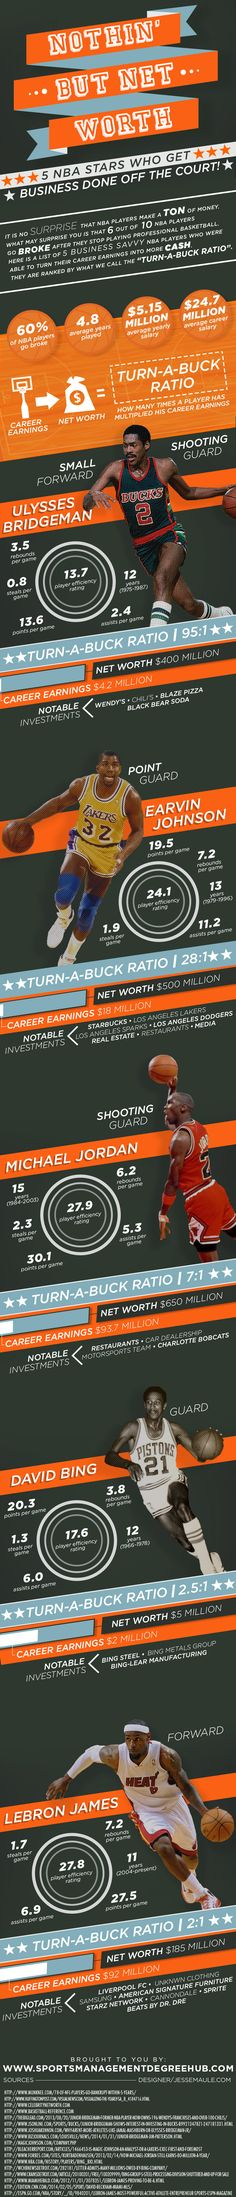 7 NBA Stars Who Get Business Done Off the Court!